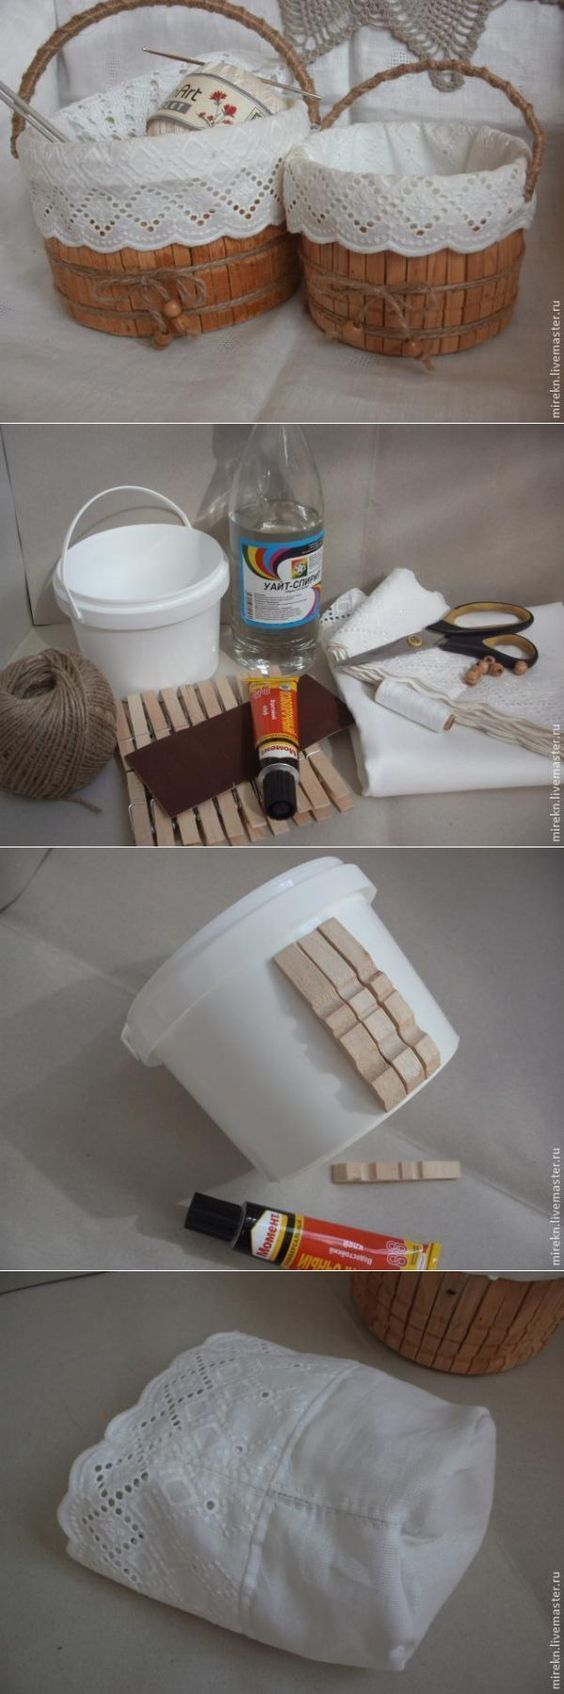 Stylish and decorative basket that makes recycling with plastic buckets  Stylish and decorative basket that makes recycling with plastic buckets  the